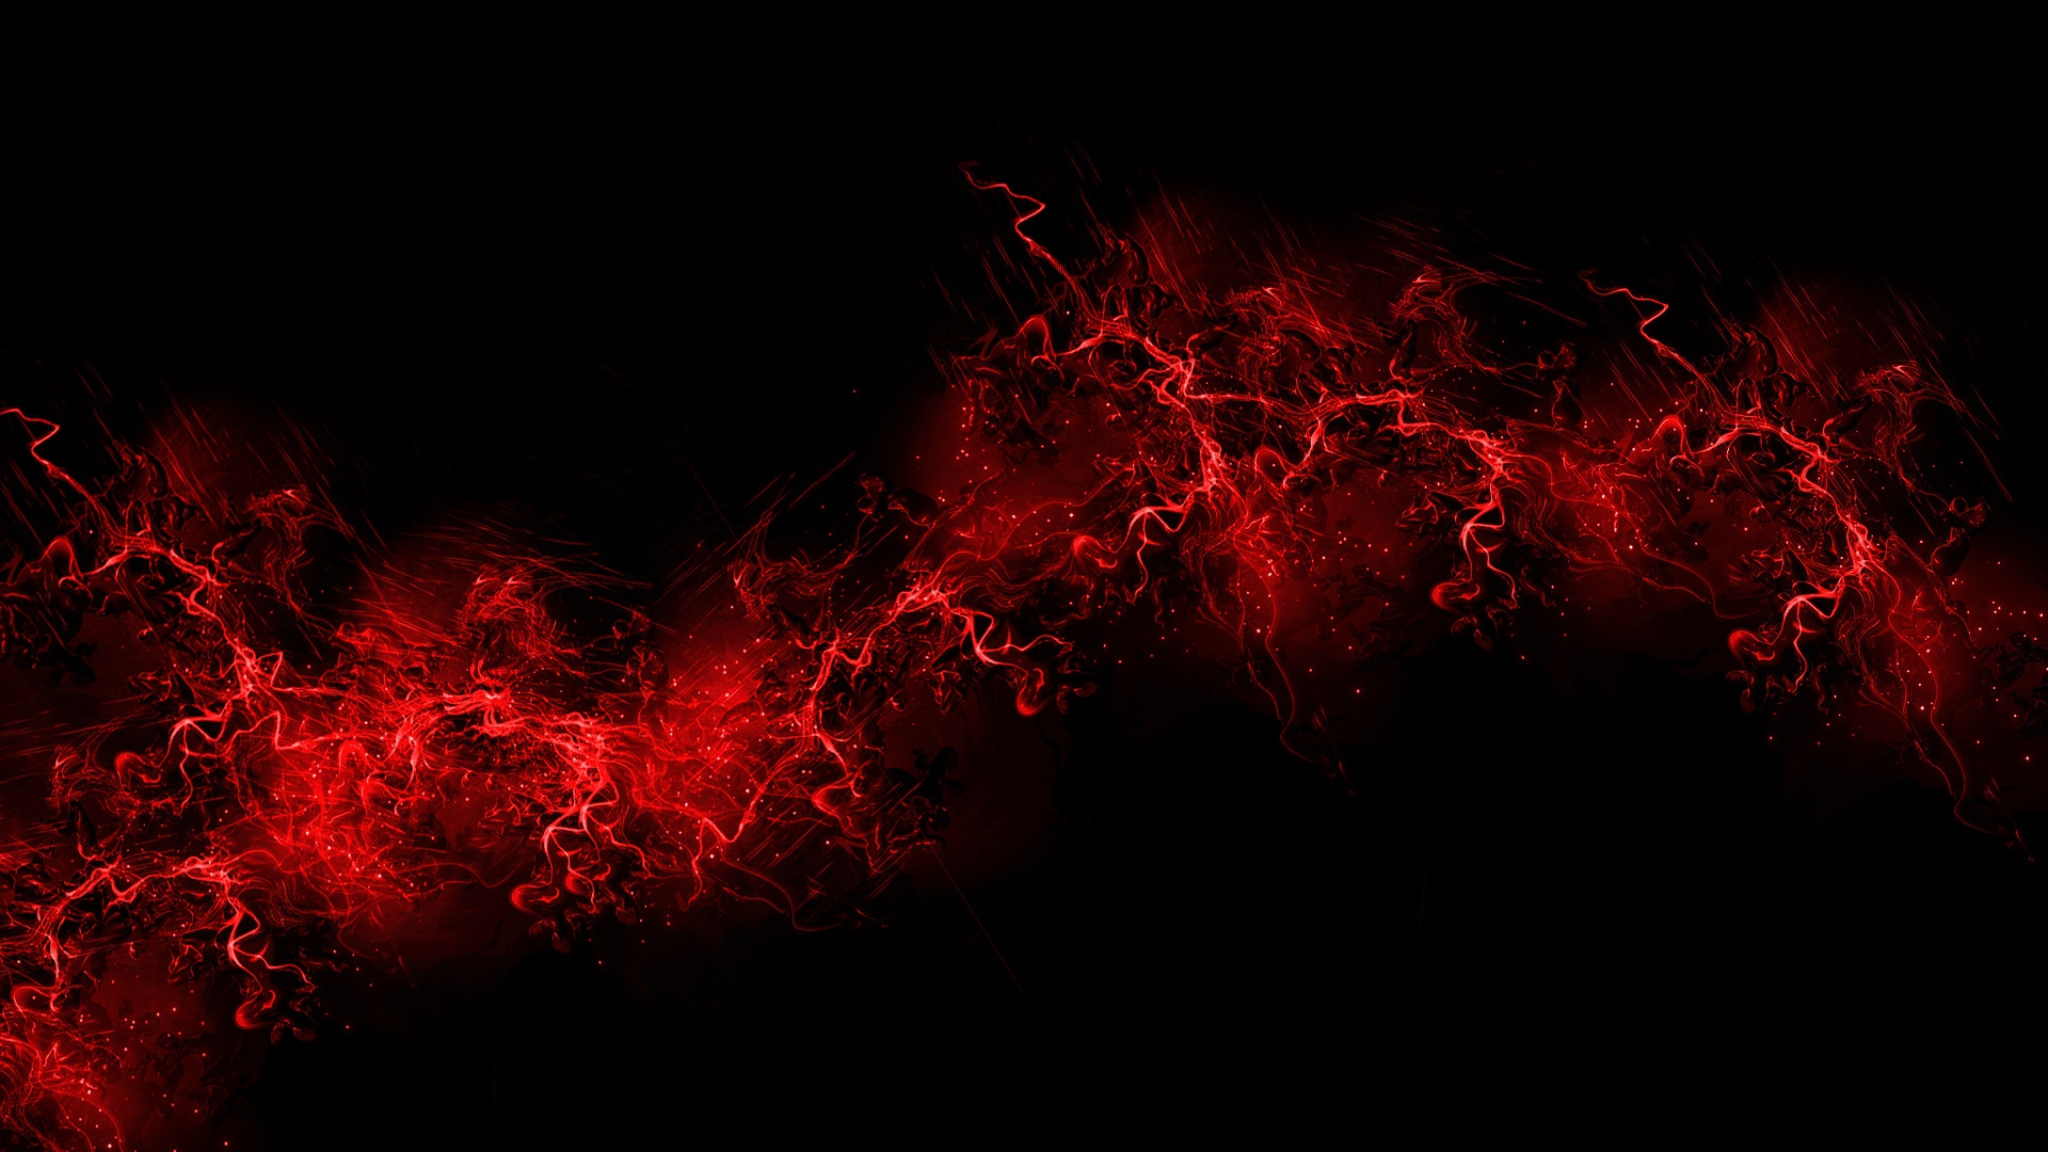 black-background-red-color-paint-explosion-burst-x-×-wallpaper-wp3403356